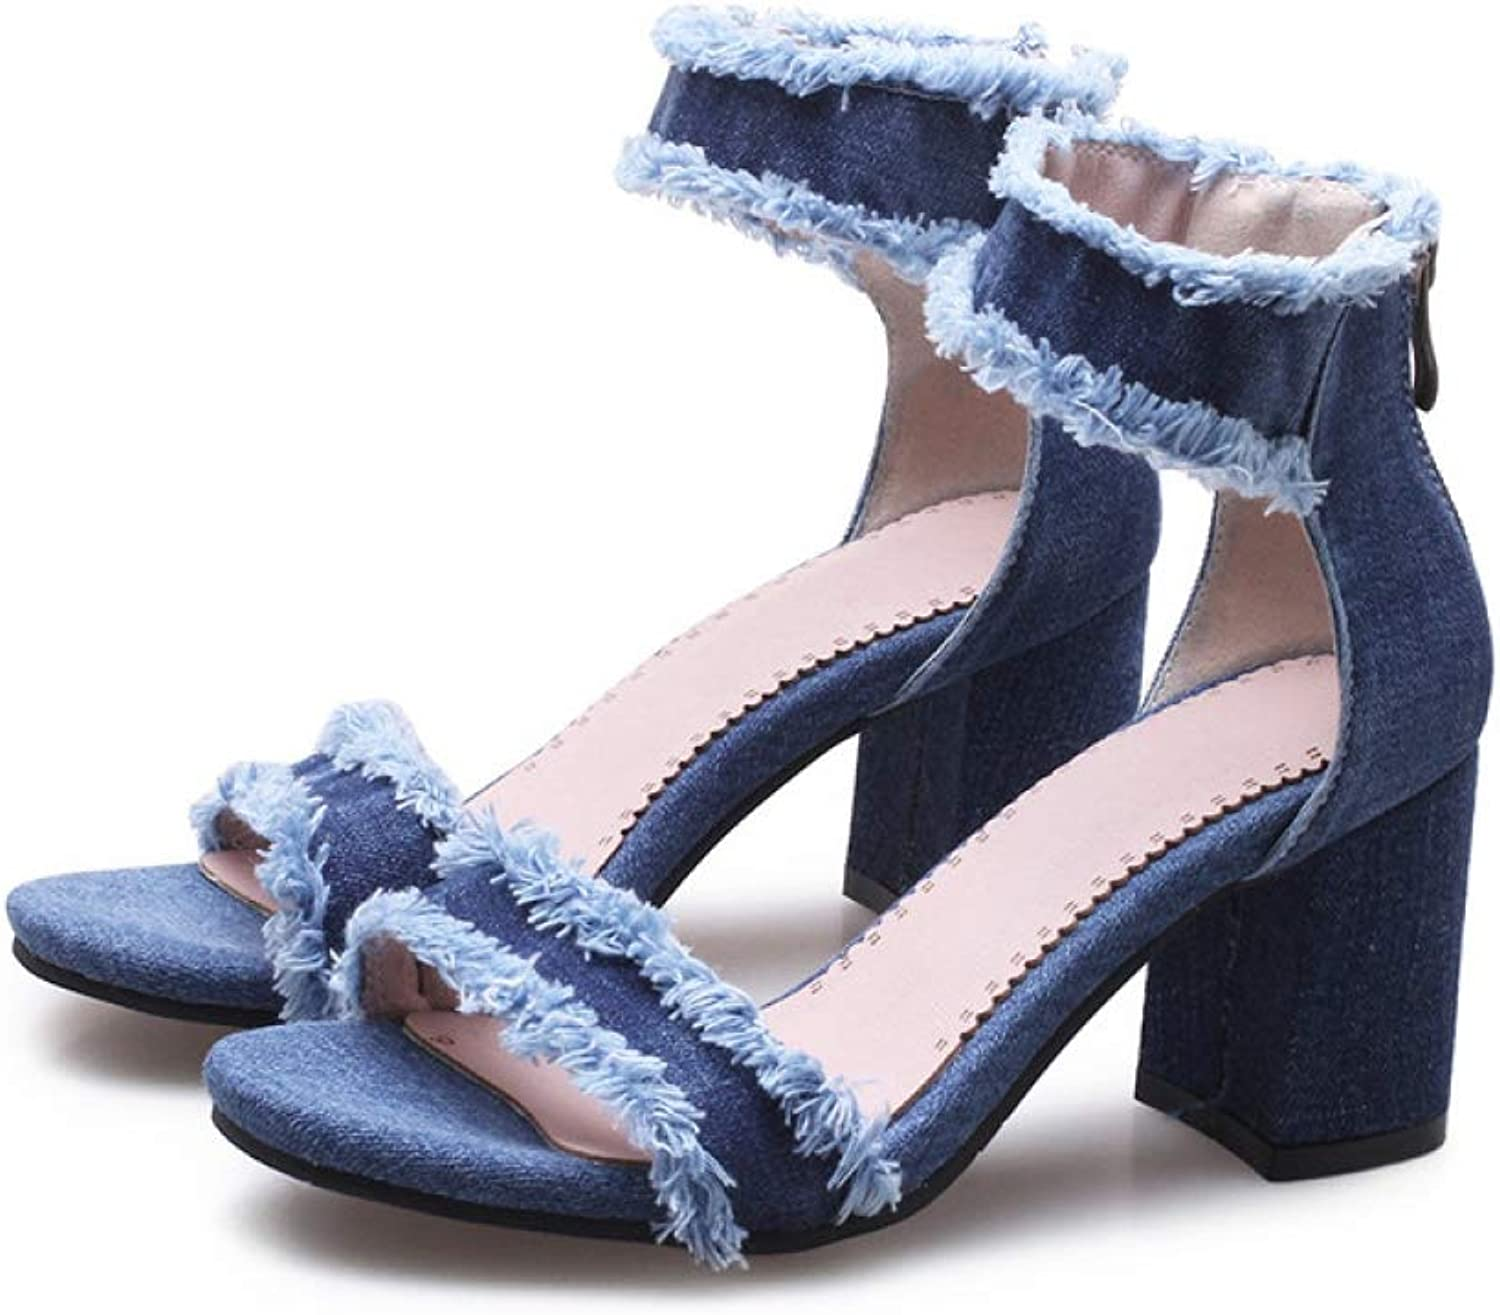 T-JULY Sandals for Women Summer Ankle Straps High Heels bluee Denim Jean Fashion Ladies shoes